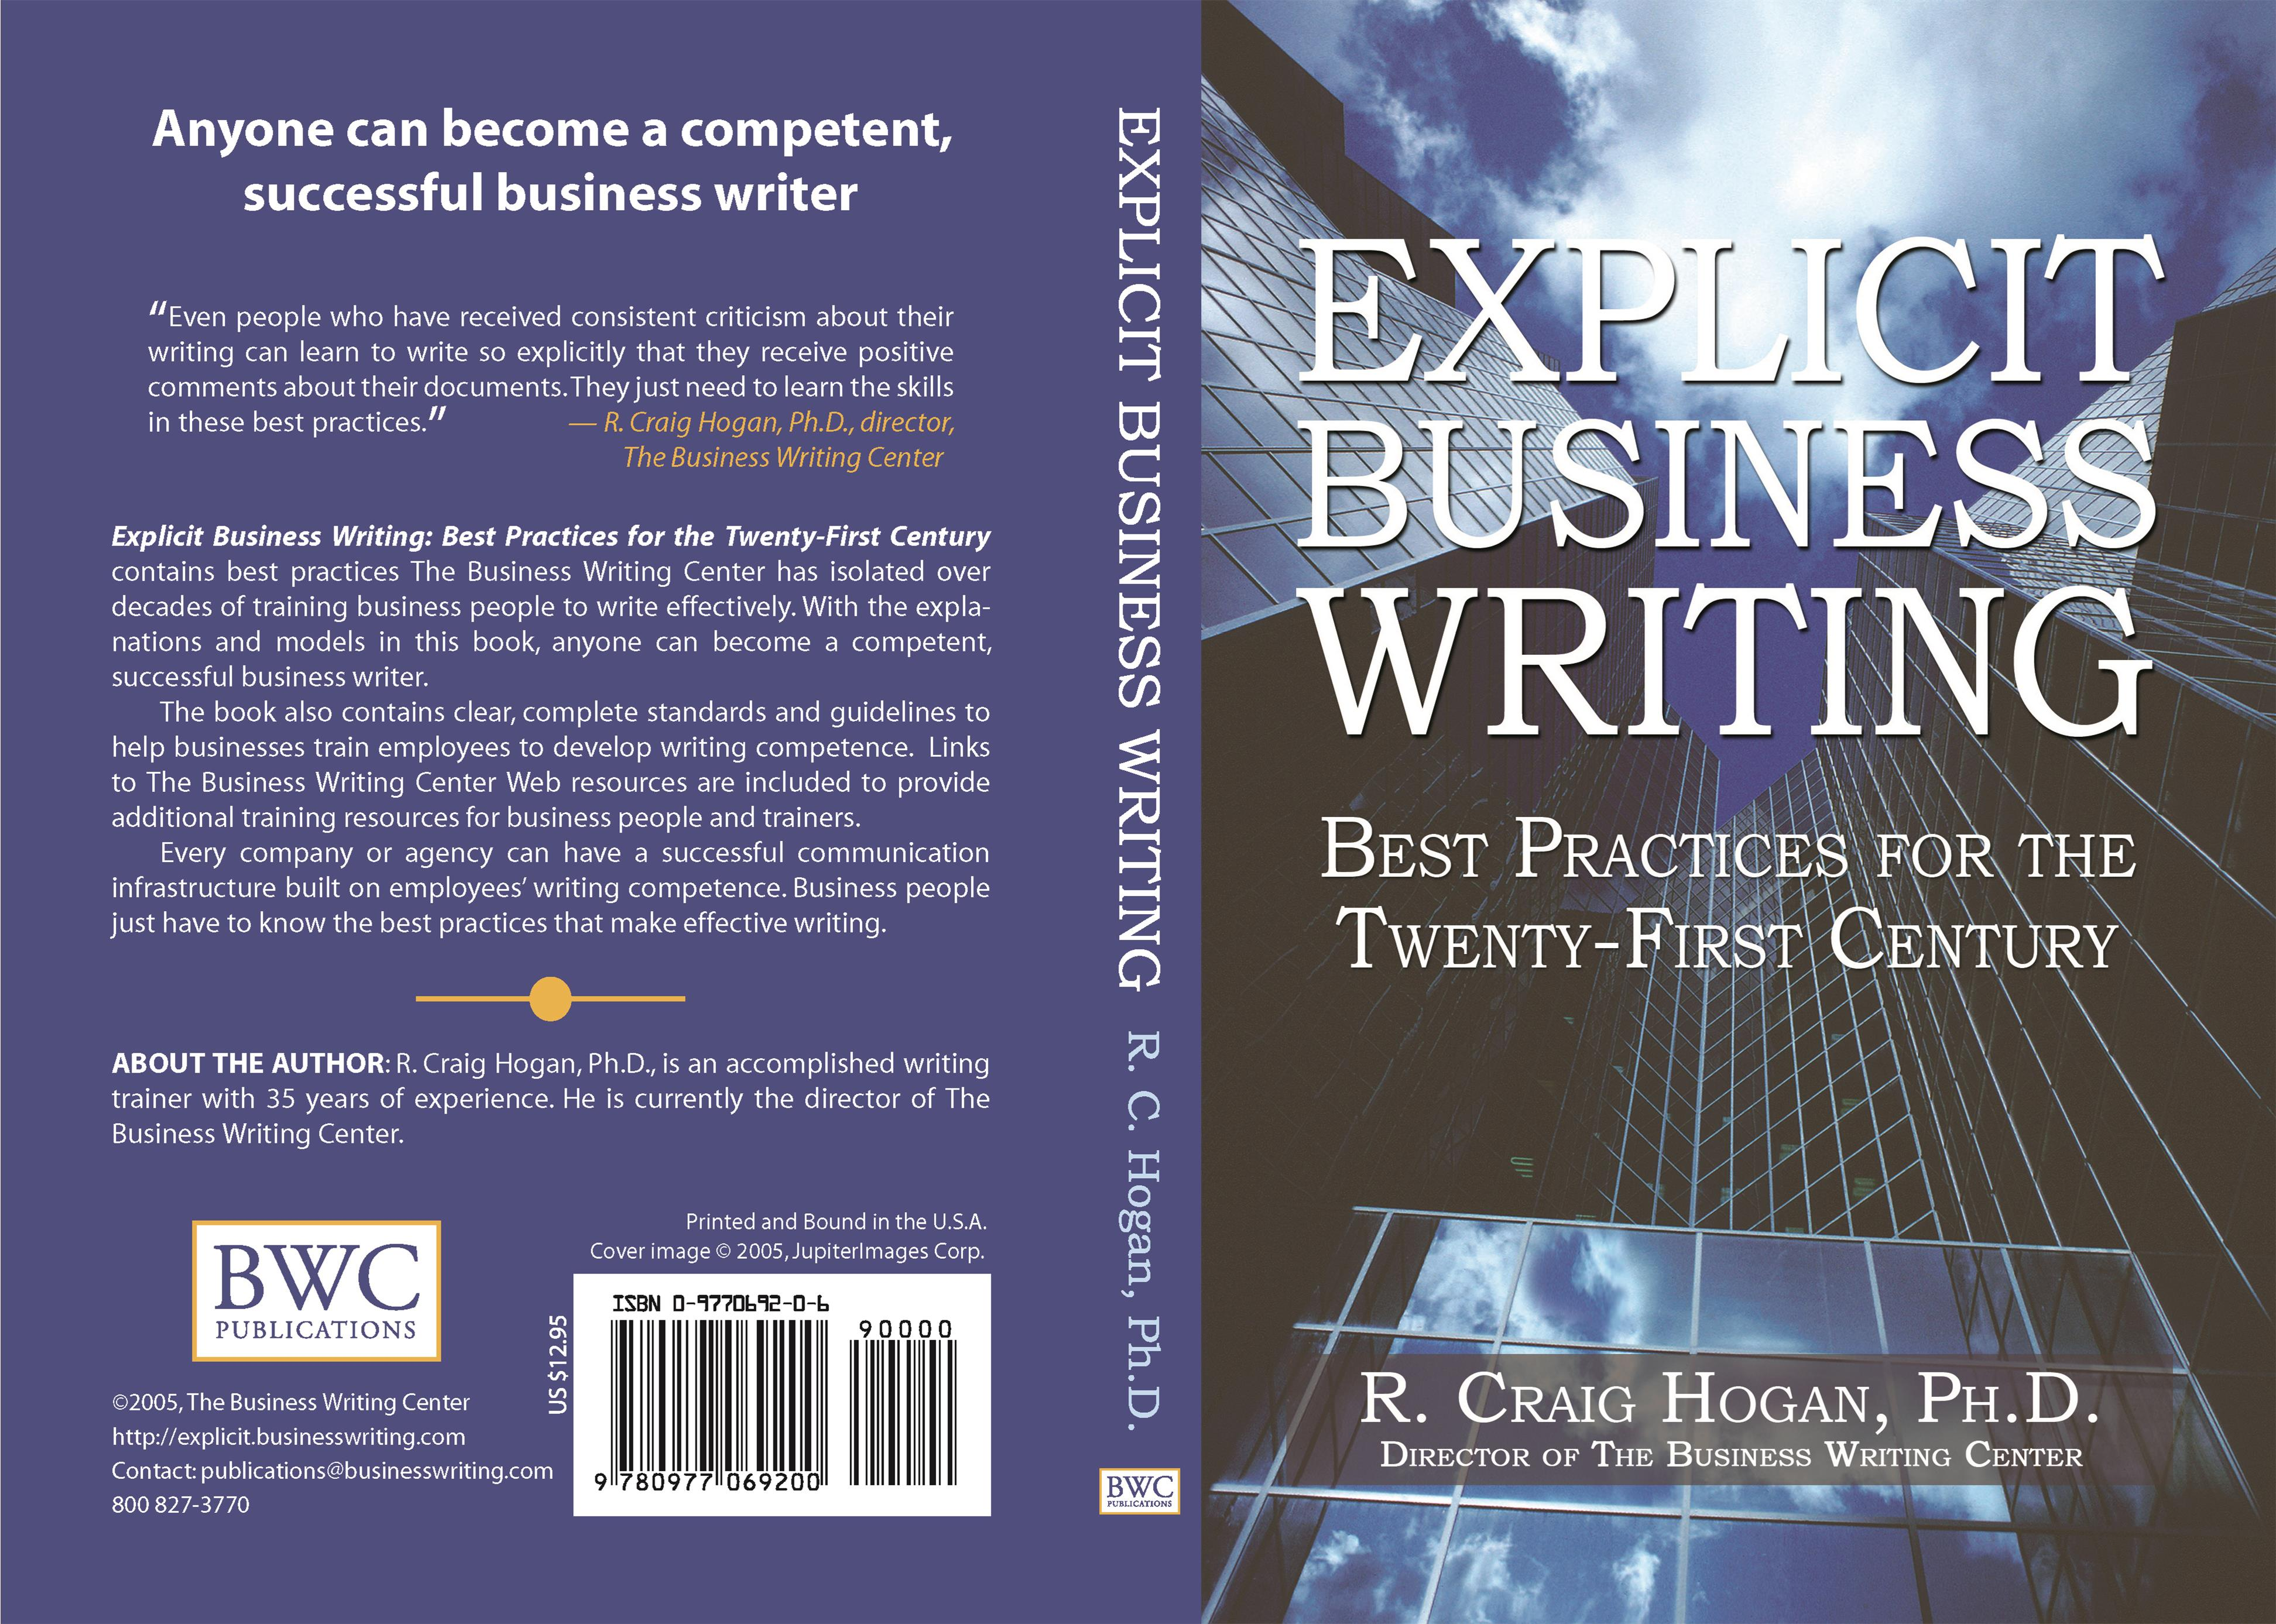 Explicit Business Writing By Craig Hogan    TheBookPatchcom ccb eb d A Ddcfffa C ccb eb d A Ddcfffa